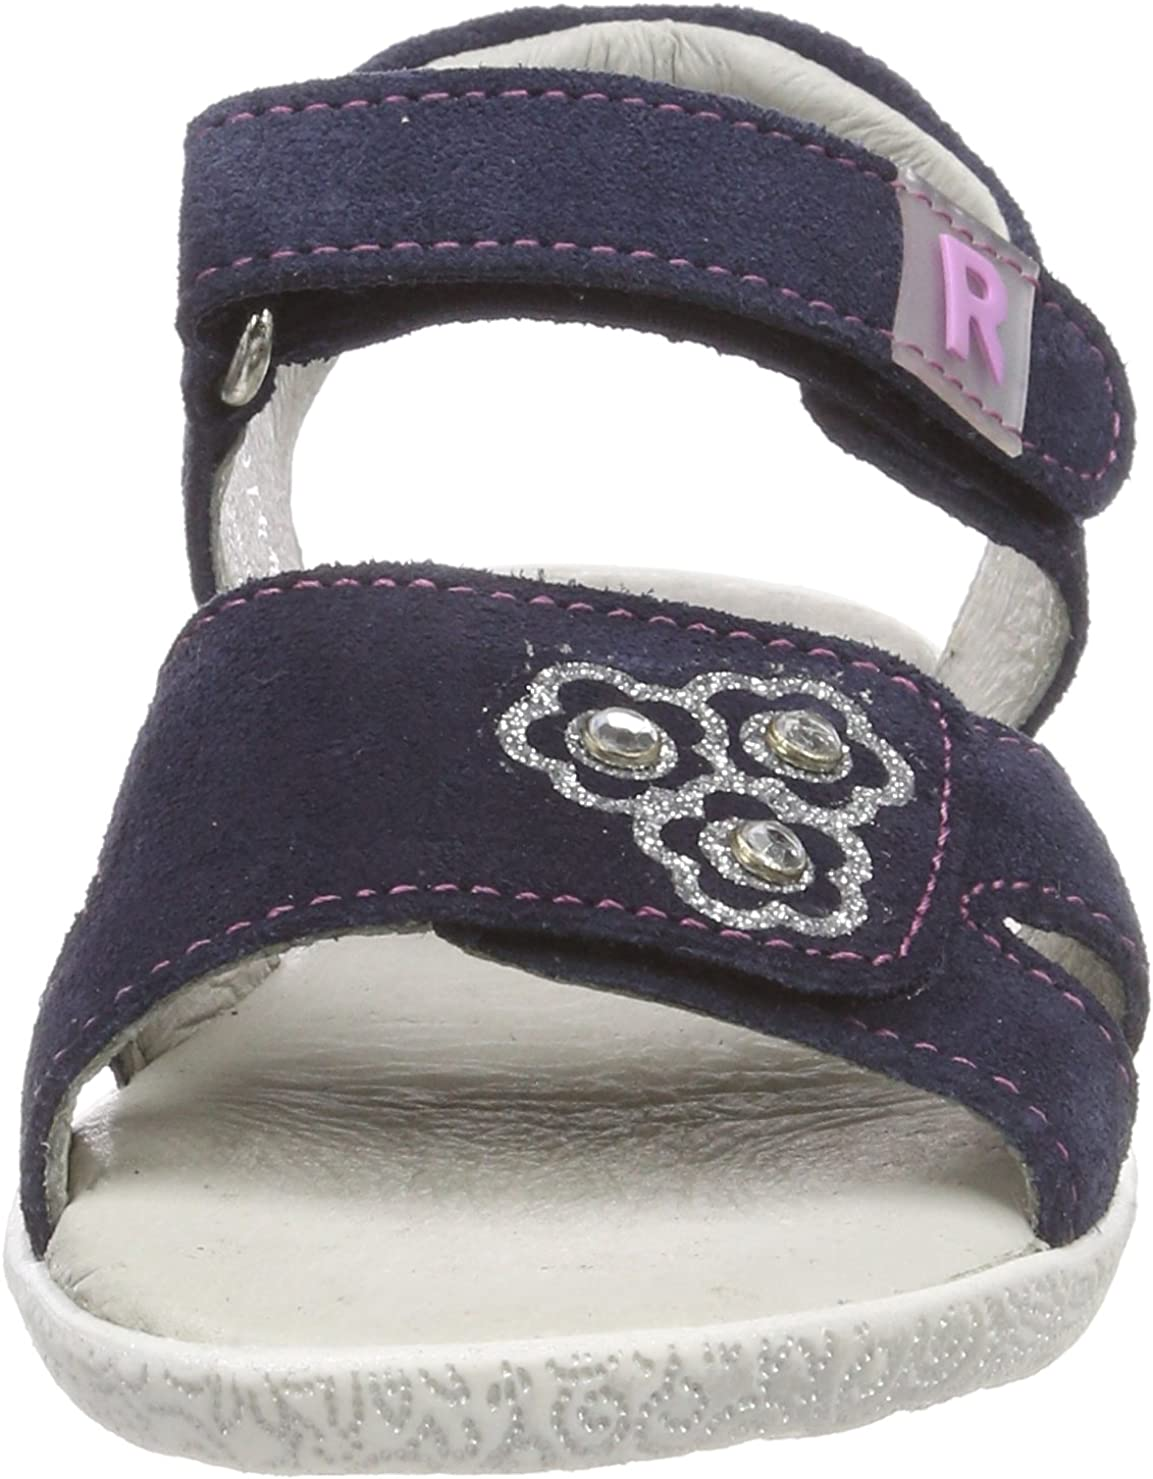 Richter Girls Sandale Blau 410448-5